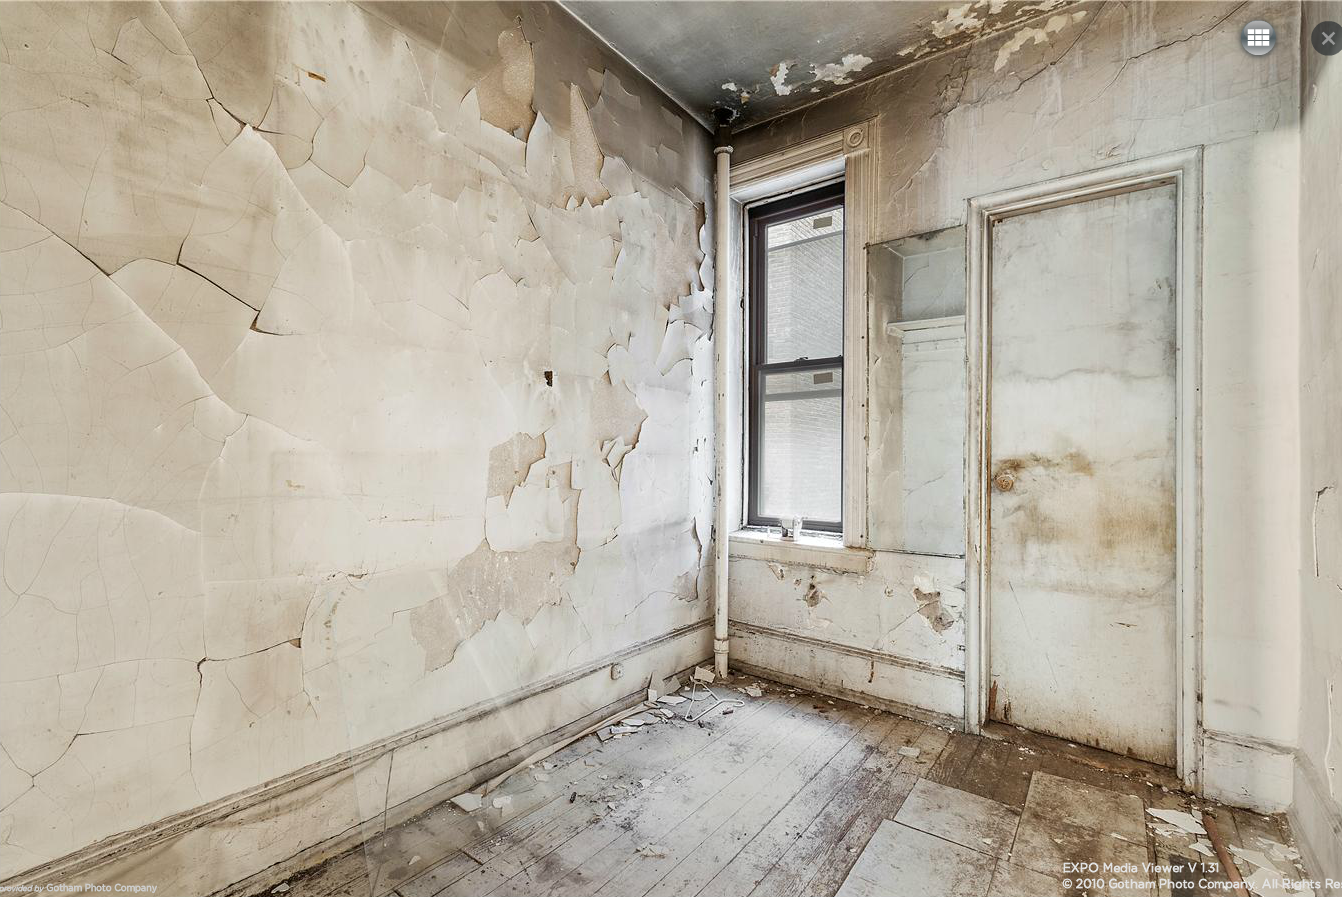 138 West 10th Street, Greenwich Village, Cool Listings, NYC Apartments For Sale, Greenwich Village co op for sale, Fixer-Upper, Halloween